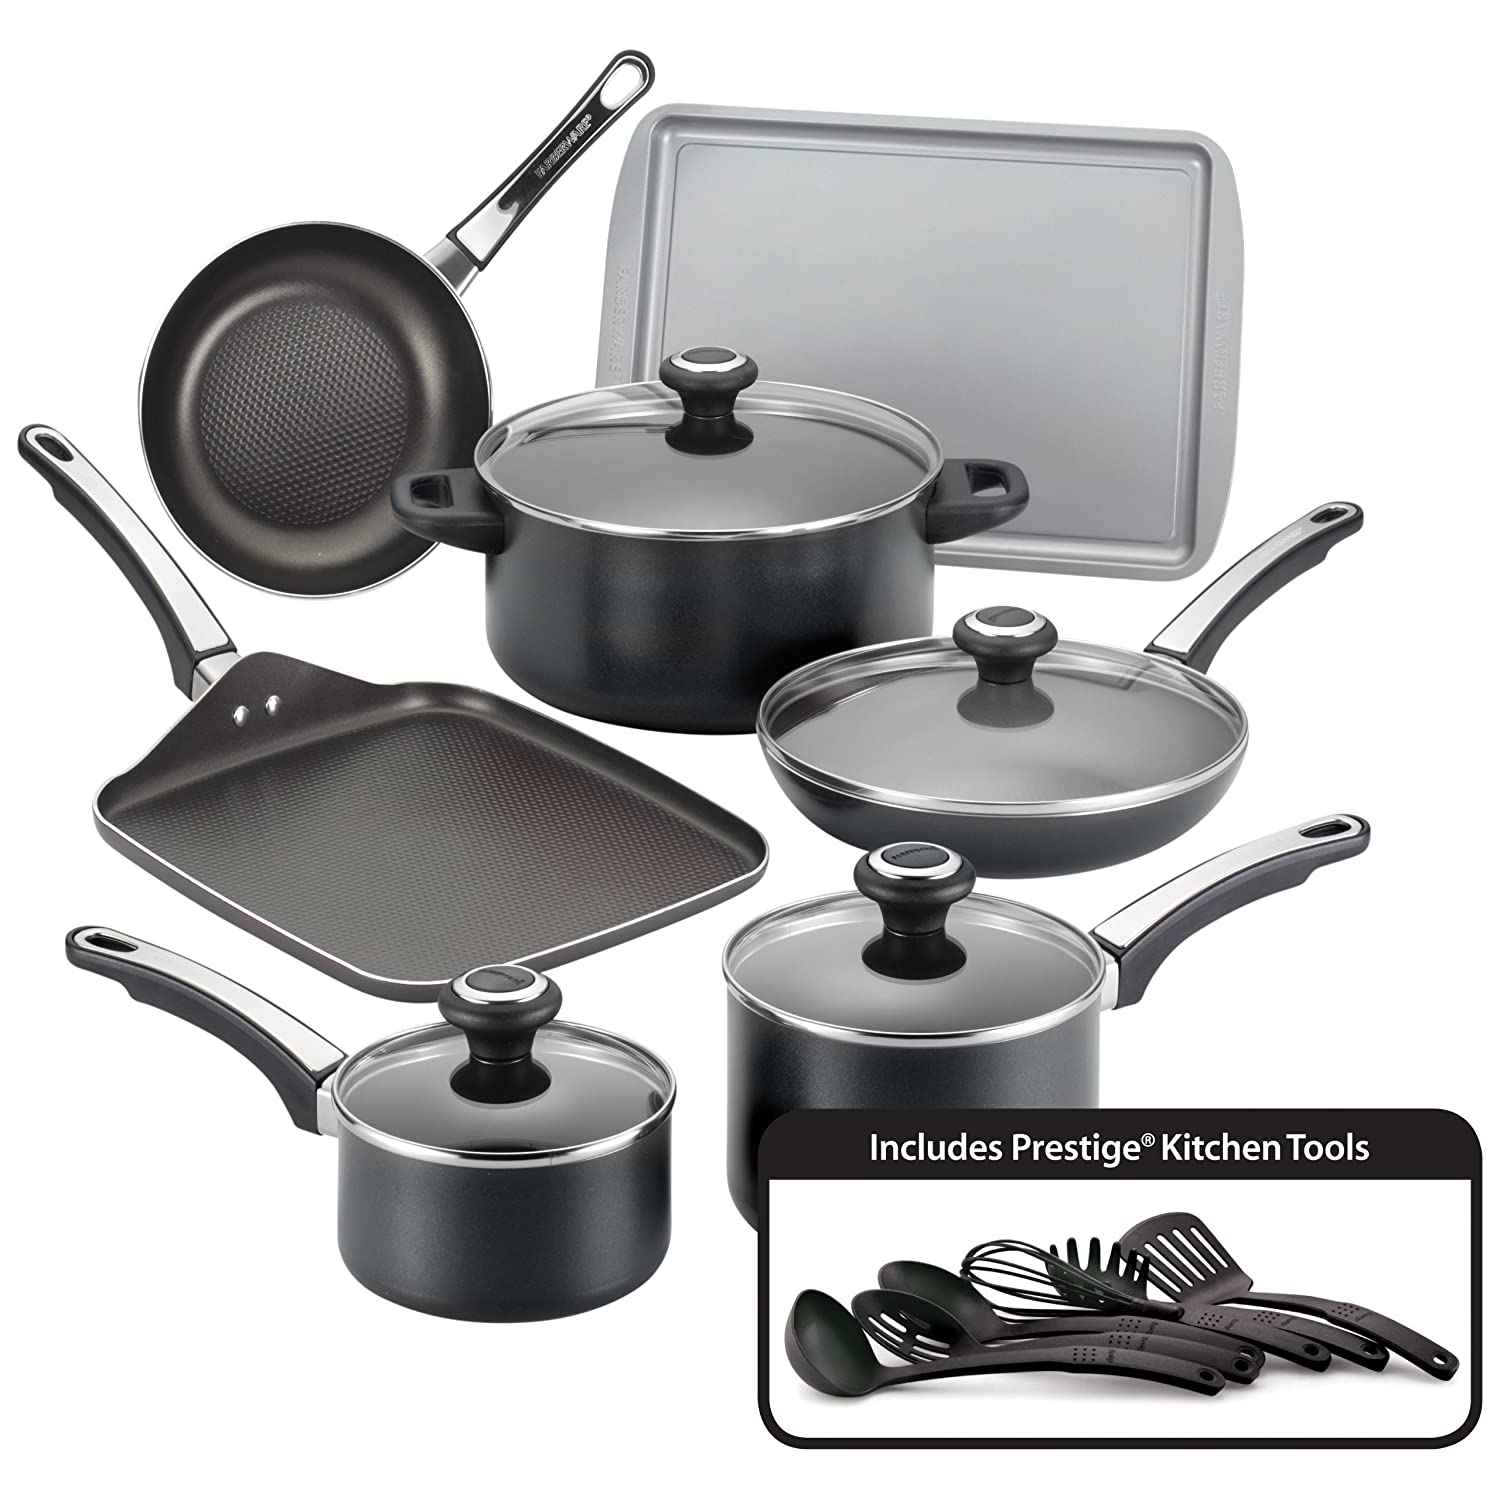 Farberware High Performance Nonstick Aluminum 17-Piece Cookware Set, Black